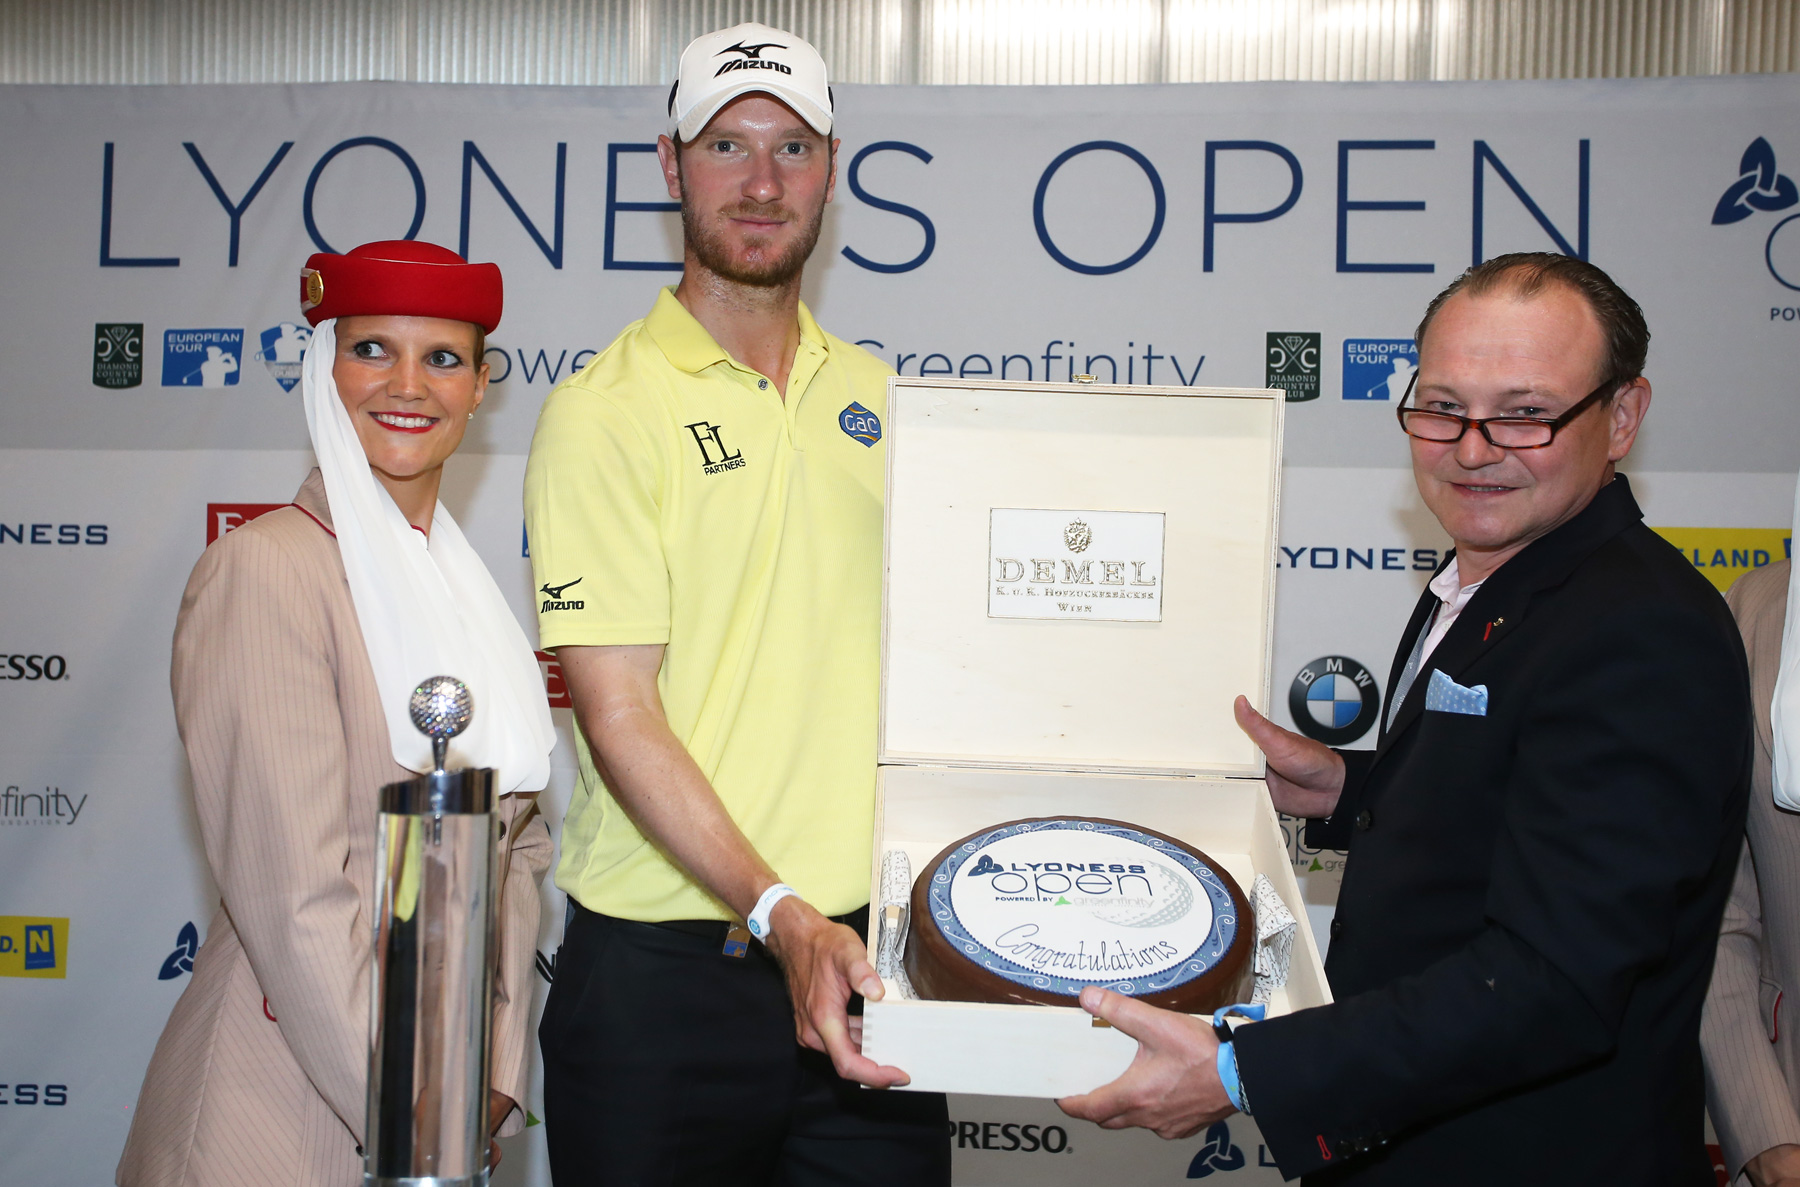 Interview With Chris Wood, Professional Golfer 7